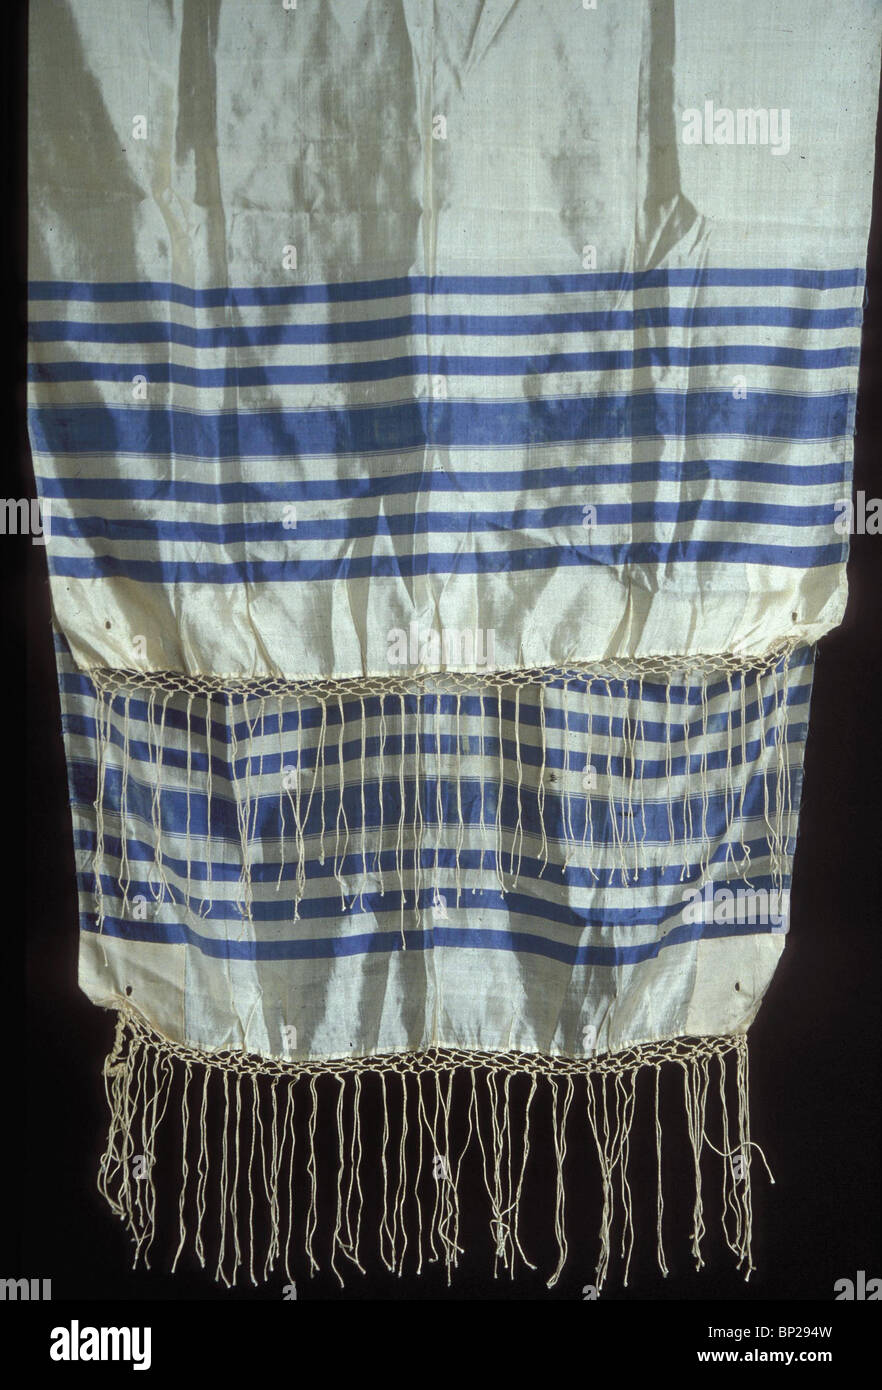 TALLIT - PRAYER SHAWL WORN BY JEWISH MALES DURING PRAYER & IN THE SYNAGOGUE. WEARING THE TALLIT COMPLIES WITH - Stock Image